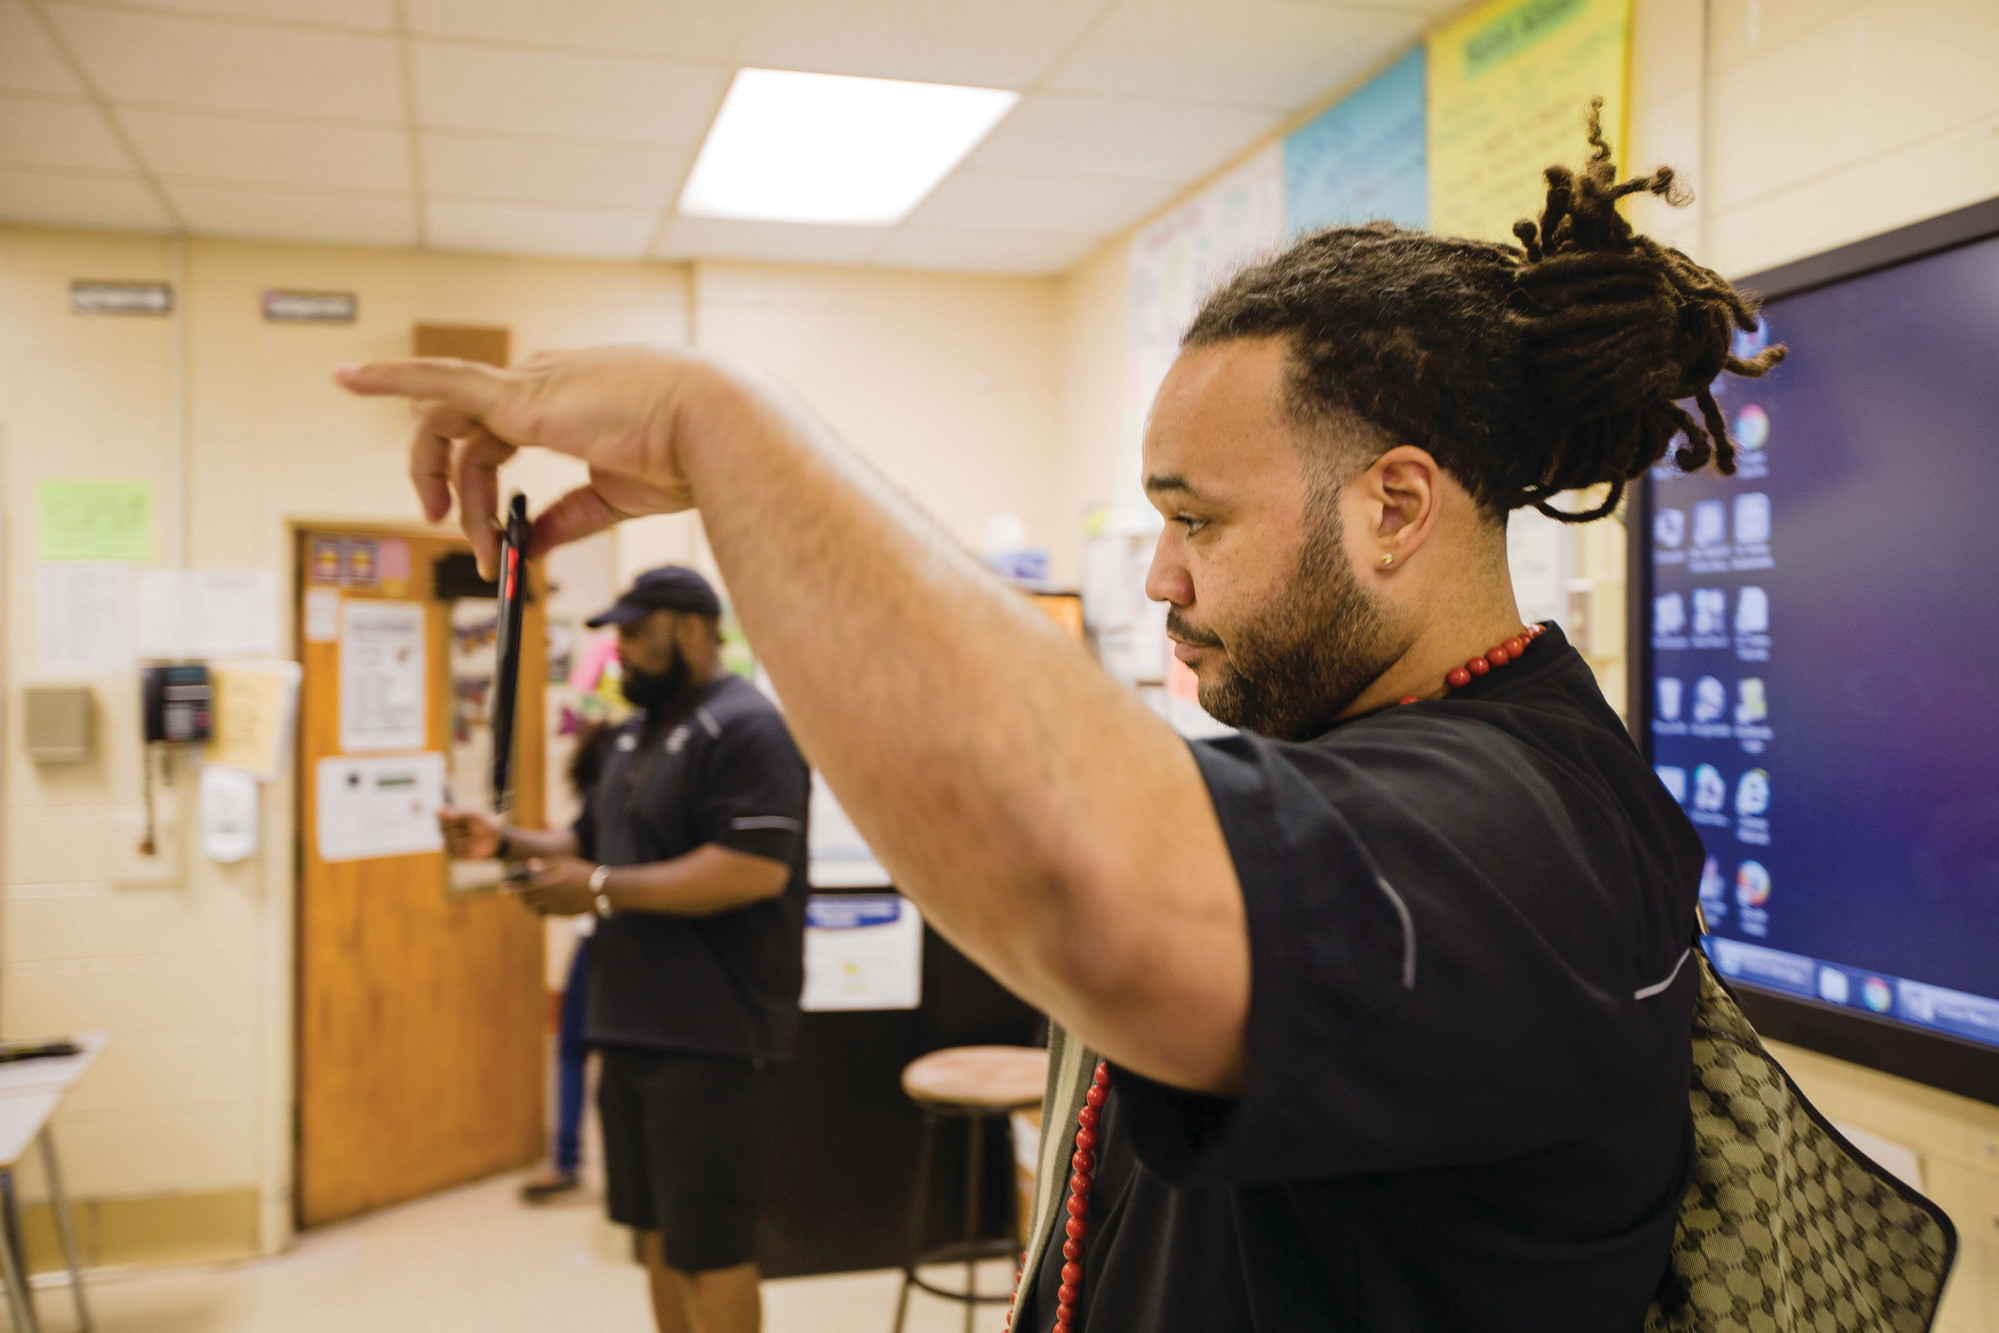 Former Gamecock football standout Langston Moore shows students his cellphone Friday during a visit to Willow Drive Elementary School. He told students since cellphones are a reading device and so handy these days, there's never an excuse for them not to read.